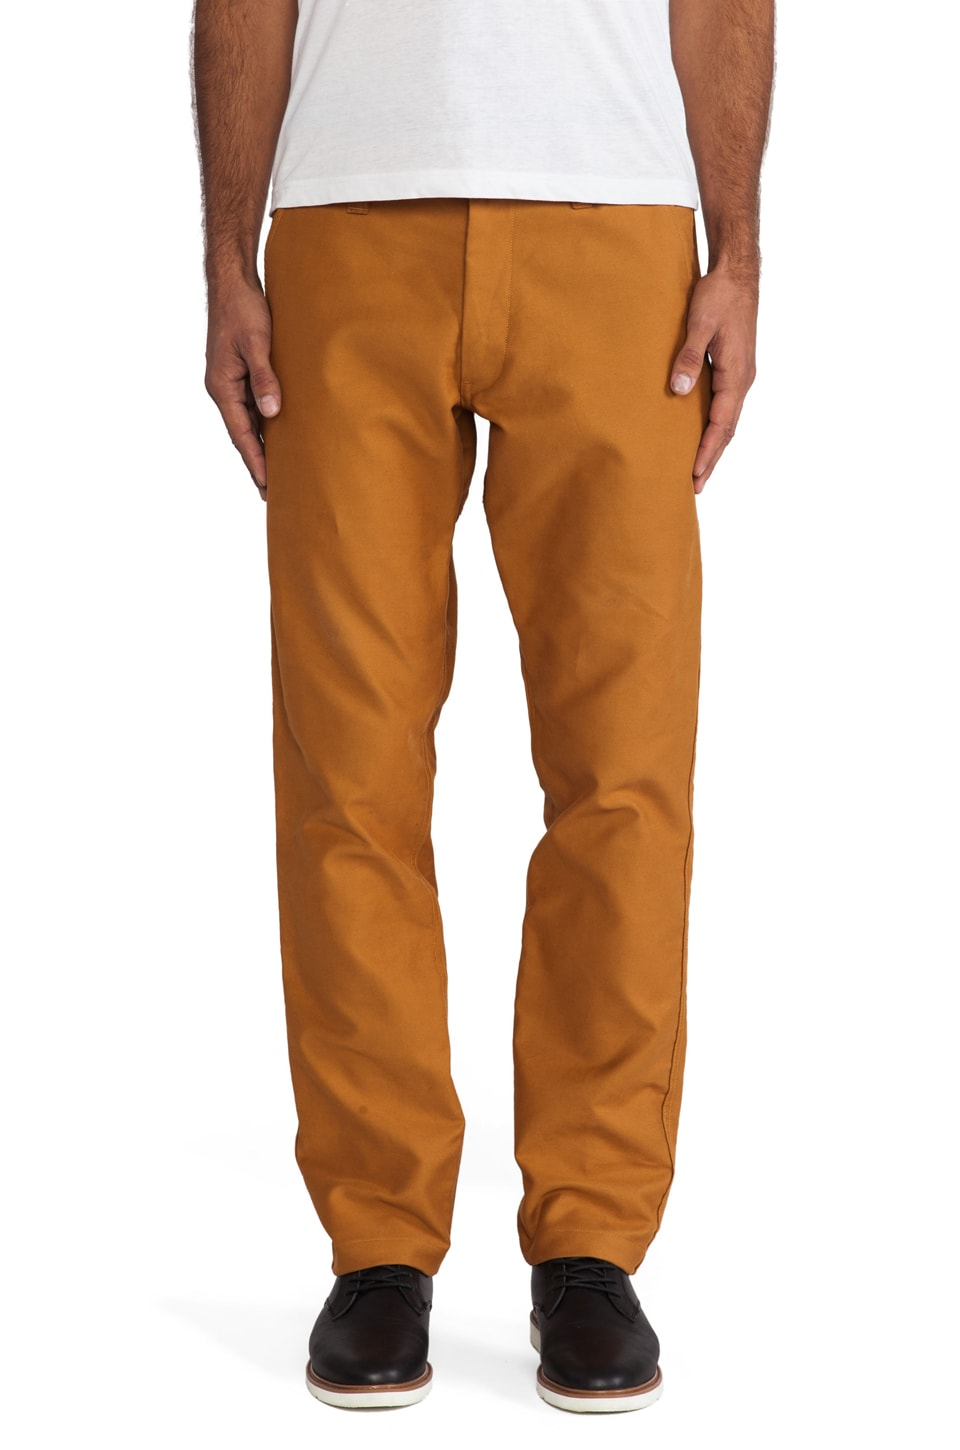 AXS Folk Technology Moleskin Chino in Golden Brown